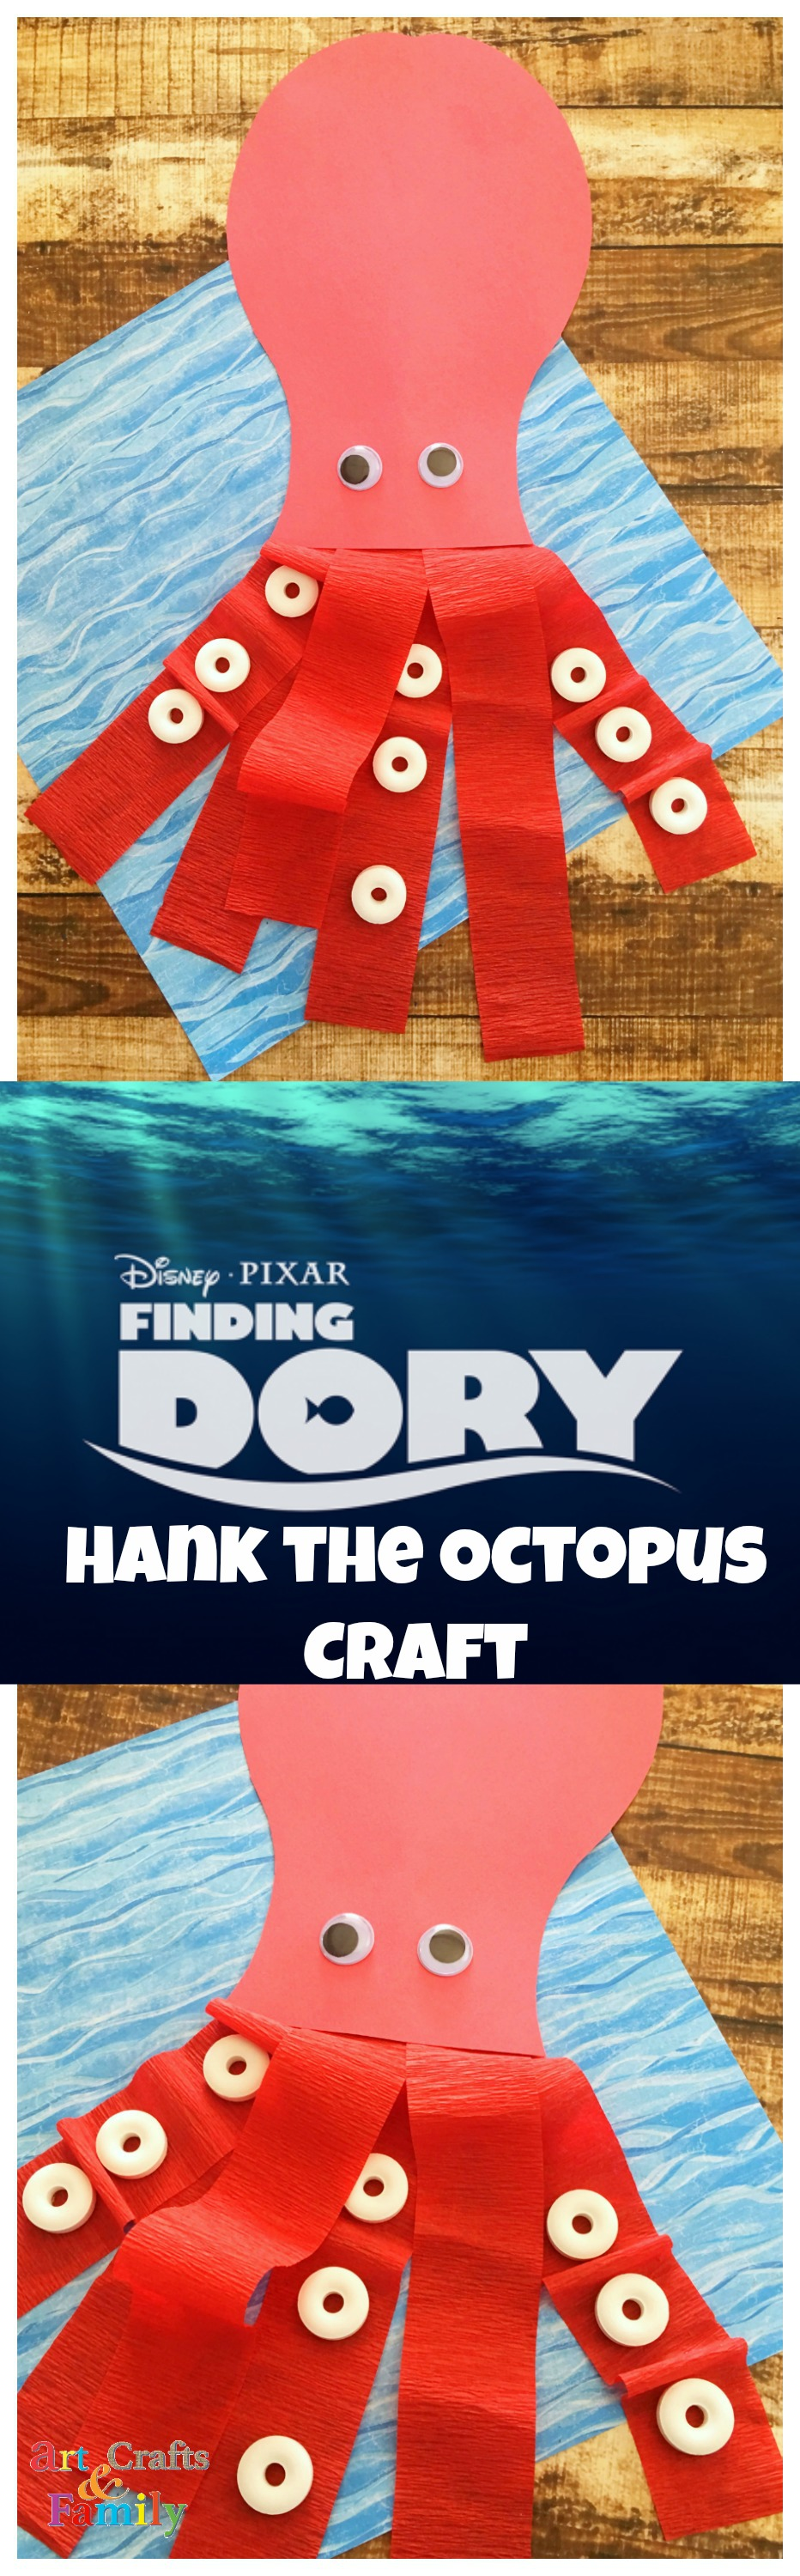 Finding Dory Craft | Create your own Hank the Octopus (septopus)